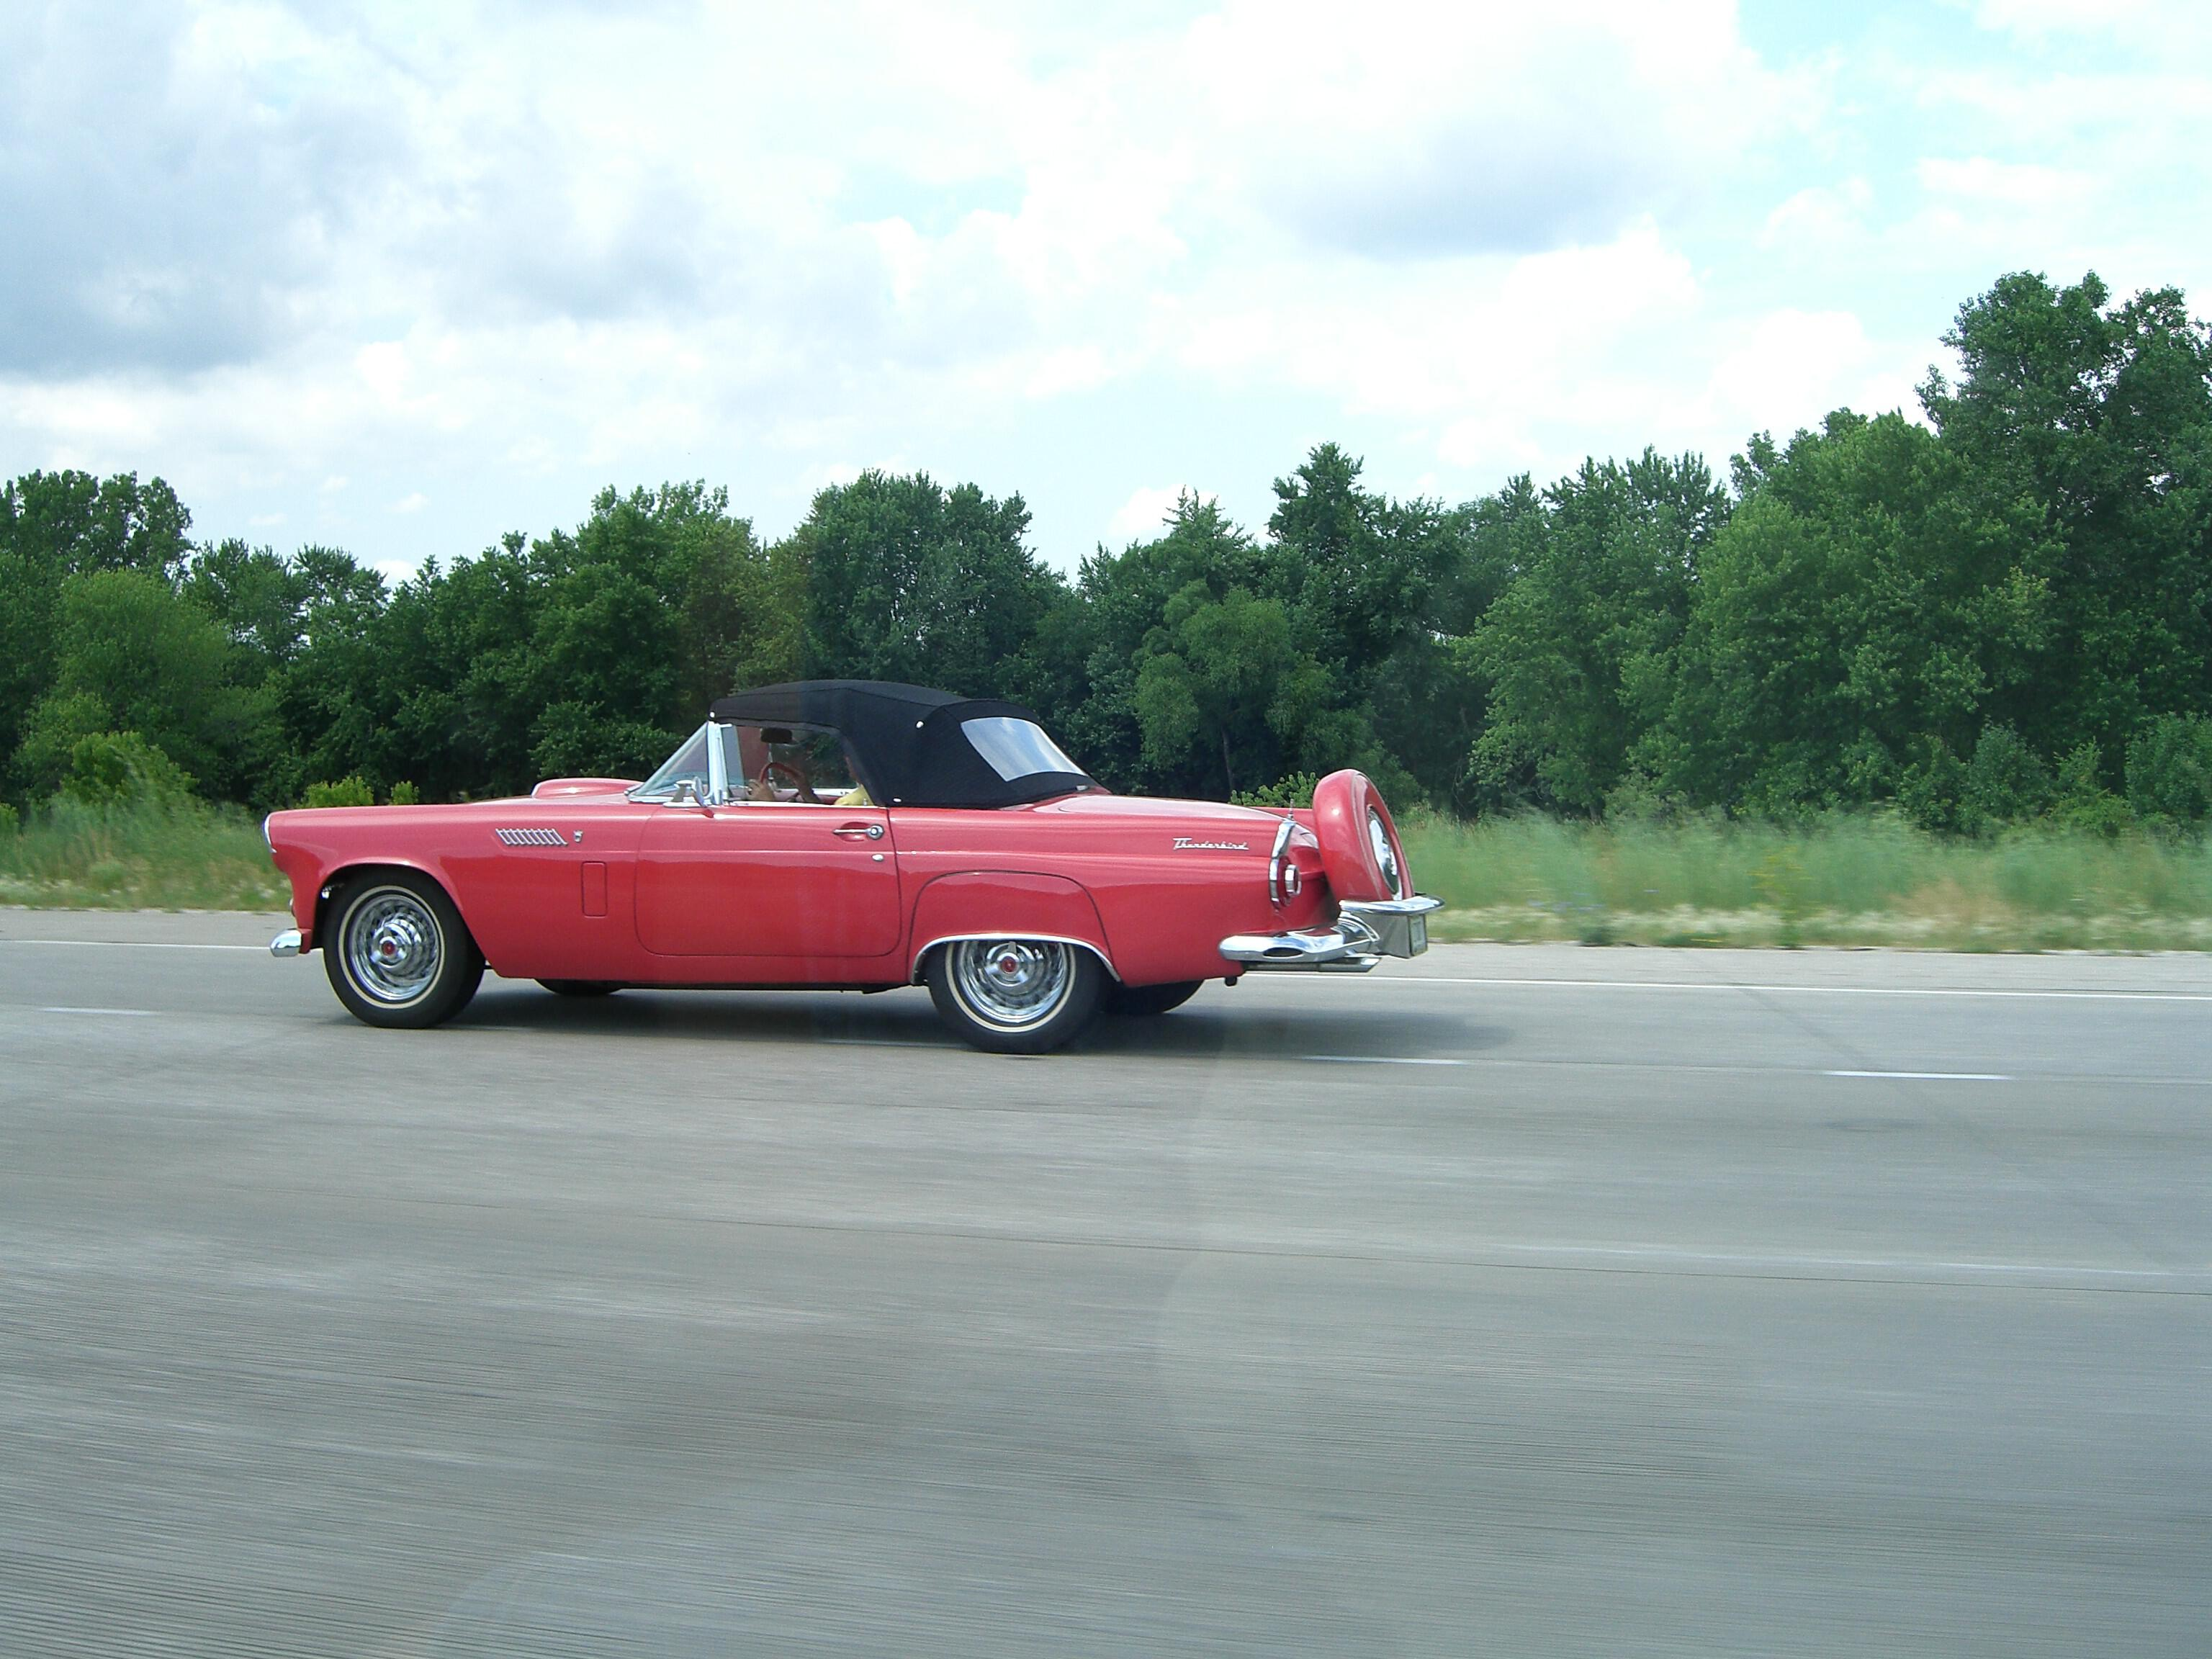 Classic Ford Thunderbird red